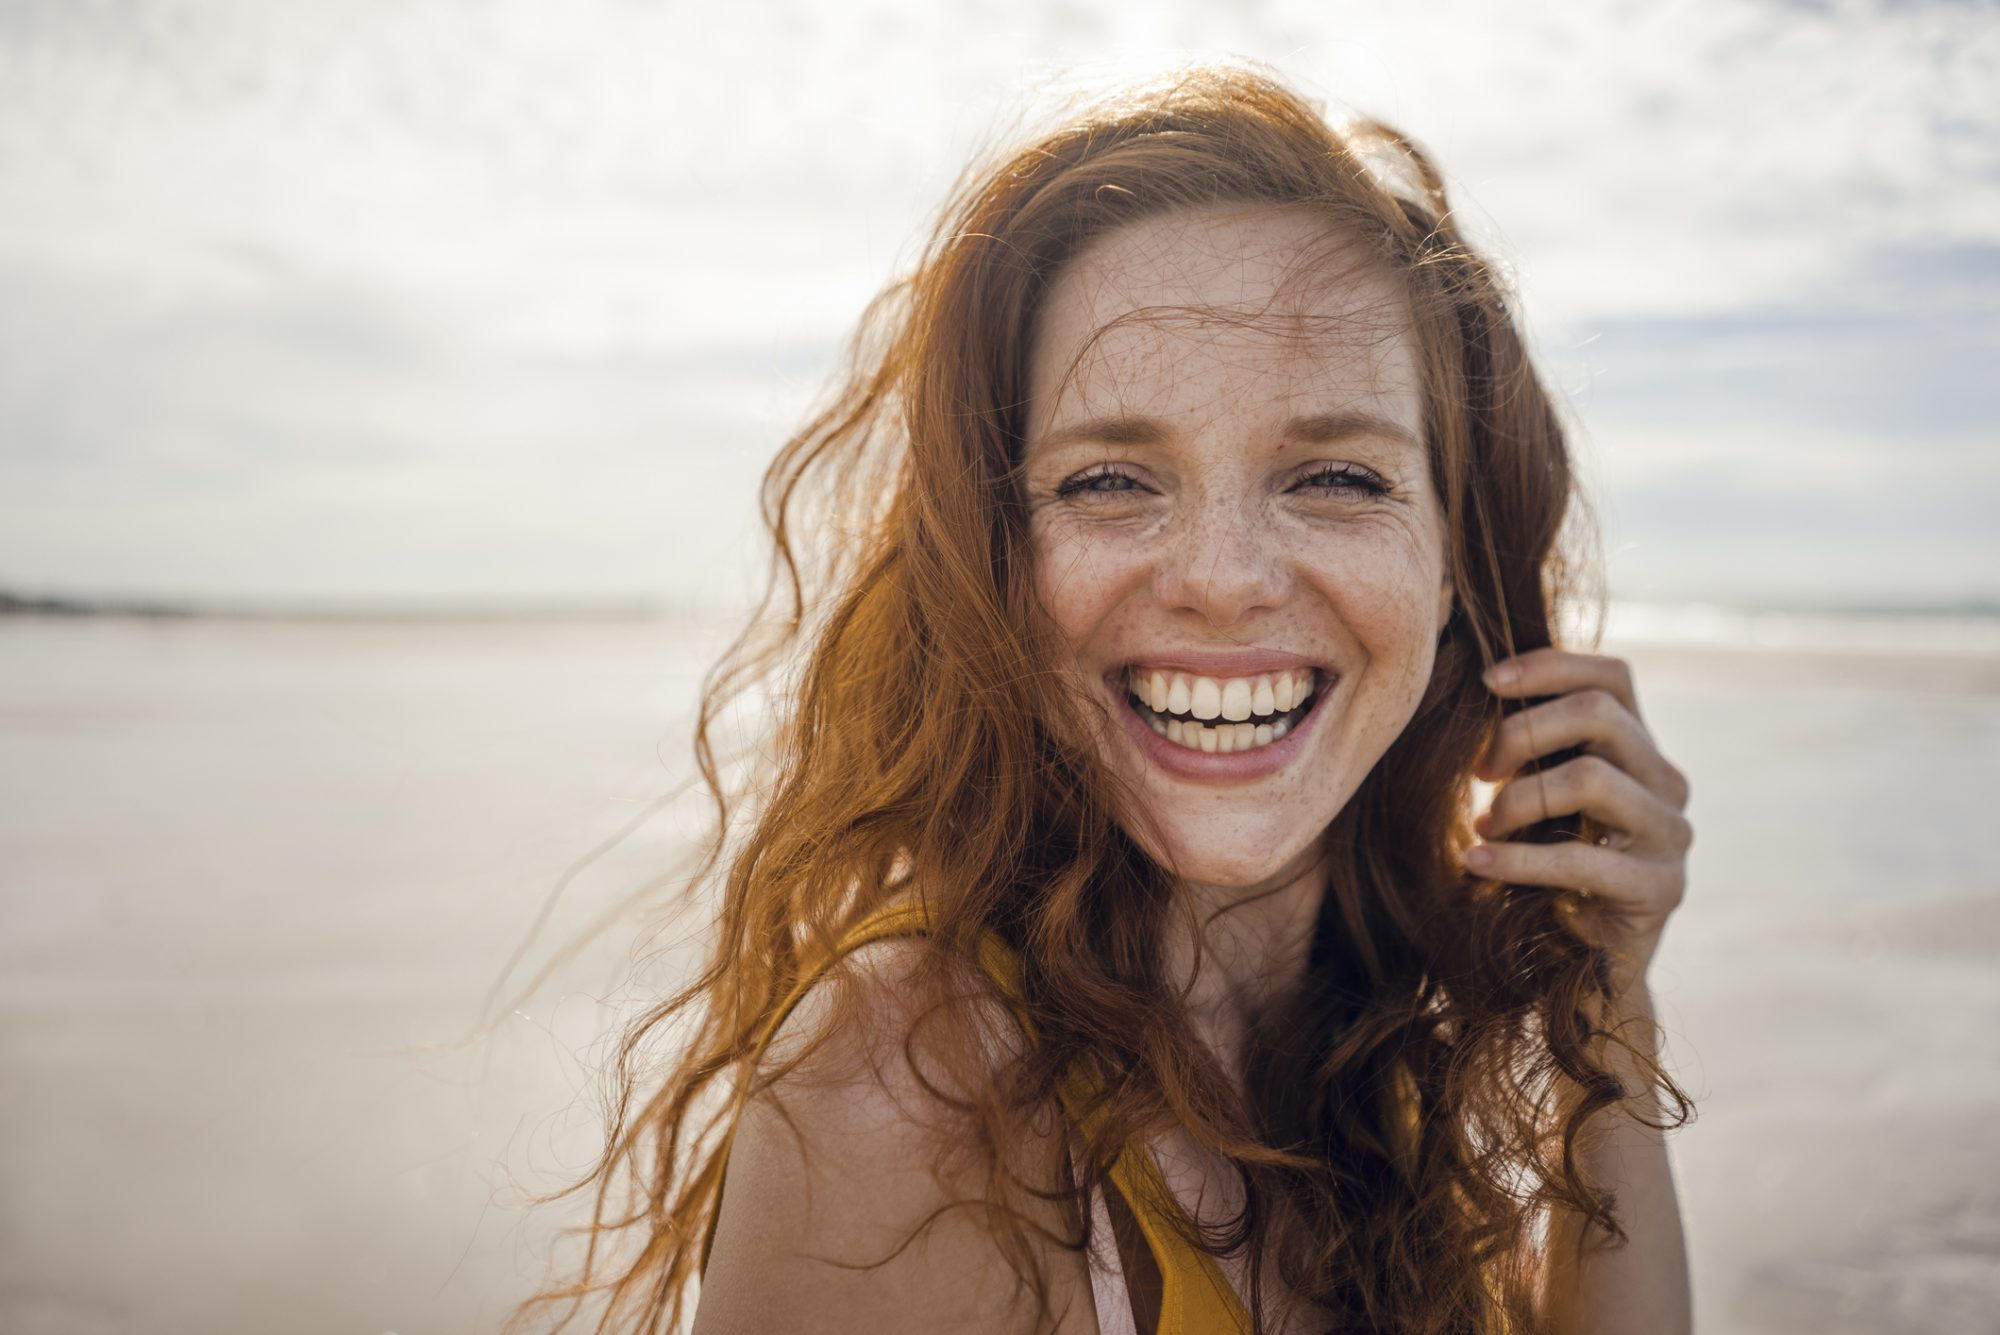 Portrait of a redheaded woman, laughing happily on the beach